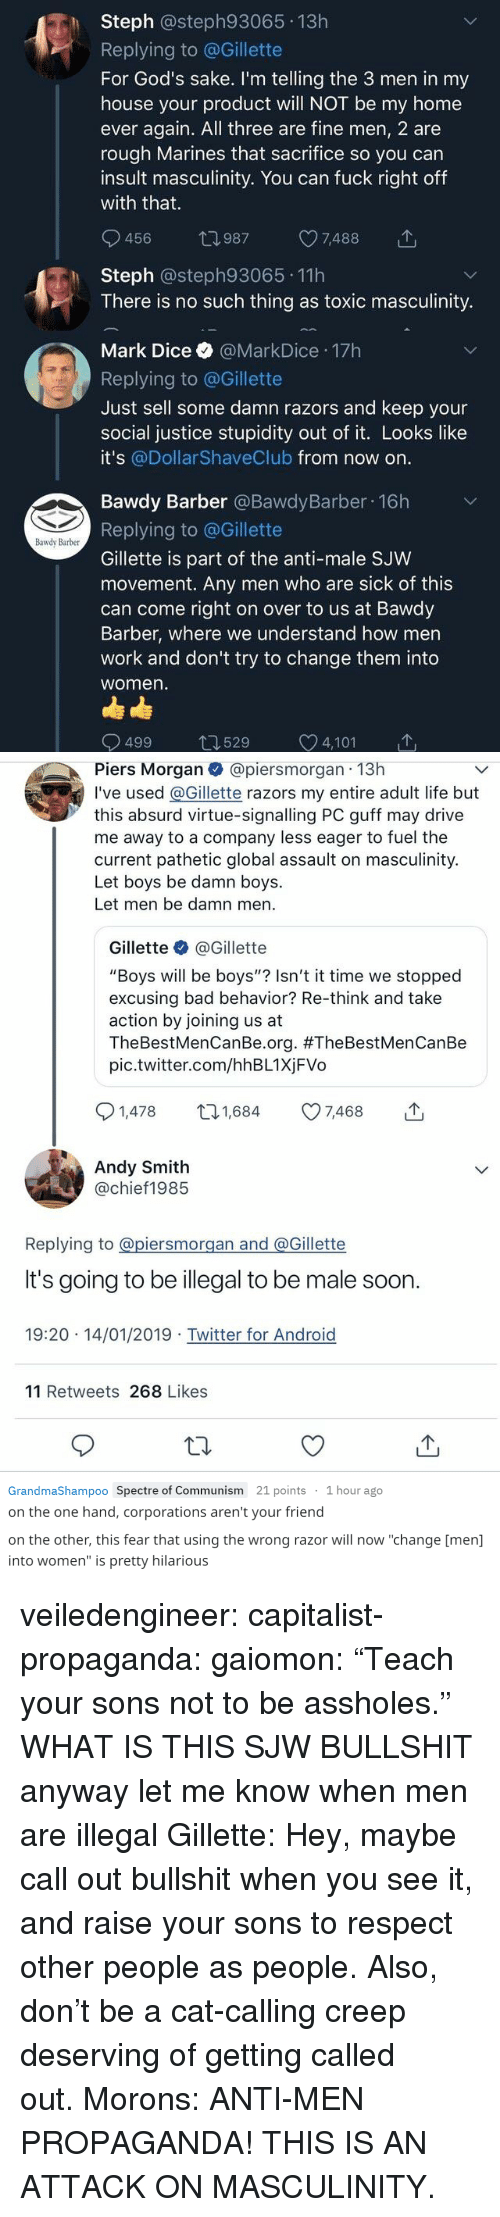 "Android, Bad, and Barber: h Steph @steph93065 13h  Replying to @Gillette  For God's sake. I'm telling the 3 men in my  house your product will NOT be my home  ever again. All three are fine men, 2 are  rough Marines that sacrifice so you can  insult masculinity. You can fuck right off  with that.  456 t0987 7488  Steph @steph93065 11h  There is no such thing as toxic masculinity.  Mark Dice @MarkDice 17h  Replying to @Gillette  Just sell some damn razors and keep your  social justice stupidity out of it. Looks like  it's @Dollar ShaveClub from now on  Bawdy Barber @BawdyBarber 16h  Replying to @Gillette  Gillette is part of the anti-male SJW  movement. Any men who are sick of this  can come right on over to us at Bawdy  Barber, where we understand how men  work and don't try to change them into  women  Bawdy Barber  499 529 C 4,101   Piers Morgan@piersmorgan 13h  I've used @Gillette razors my entire adult life but  this absurd virtue-signalling PC guff may drive  me away to a company less eager to fuel the  current pathetic global assault on masculinity.  Let boys be damn boys.  Let men be damn men  Gillette @Gillette  ""Boys will be boys""? Isn't it time we stopped  excusing bad behavior? Re-think and take  action by joining us at  TheBestMenCanBe.org. #TheBestMenCanBe  pic.twitter.com/hhBL1XjFVo  1,478 t1,684 7468  Andy Smith  @chief1985  Replying to @piersmorgan and @Gillette  It's going to be illegal to be male soon  19:20 14/01/2019 Twitter for Android  11 Retweets 268 Likes   GrandmaShampoo Spectre of Communism 21 points 1 hour ago  on the one hand, corporations aren't your friend  on the other, this fear that using the wrong razor will now ""change [men]  into women"" is pretty hilarious veiledengineer:  capitalist-propaganda:  gaiomon:  ""Teach your sons not to be assholes."" WHAT IS THIS  SJW BULLSHIT  anyway let me know when men are illegal  Gillette: Hey, maybe call out bullshit when you see it, and raise your sons to respect other people as people. Also, don't be a cat-calling creep deserving of getting called out. Morons: ANTI-MEN PROPAGANDA! THIS IS AN ATTACK ON MASCULINITY."